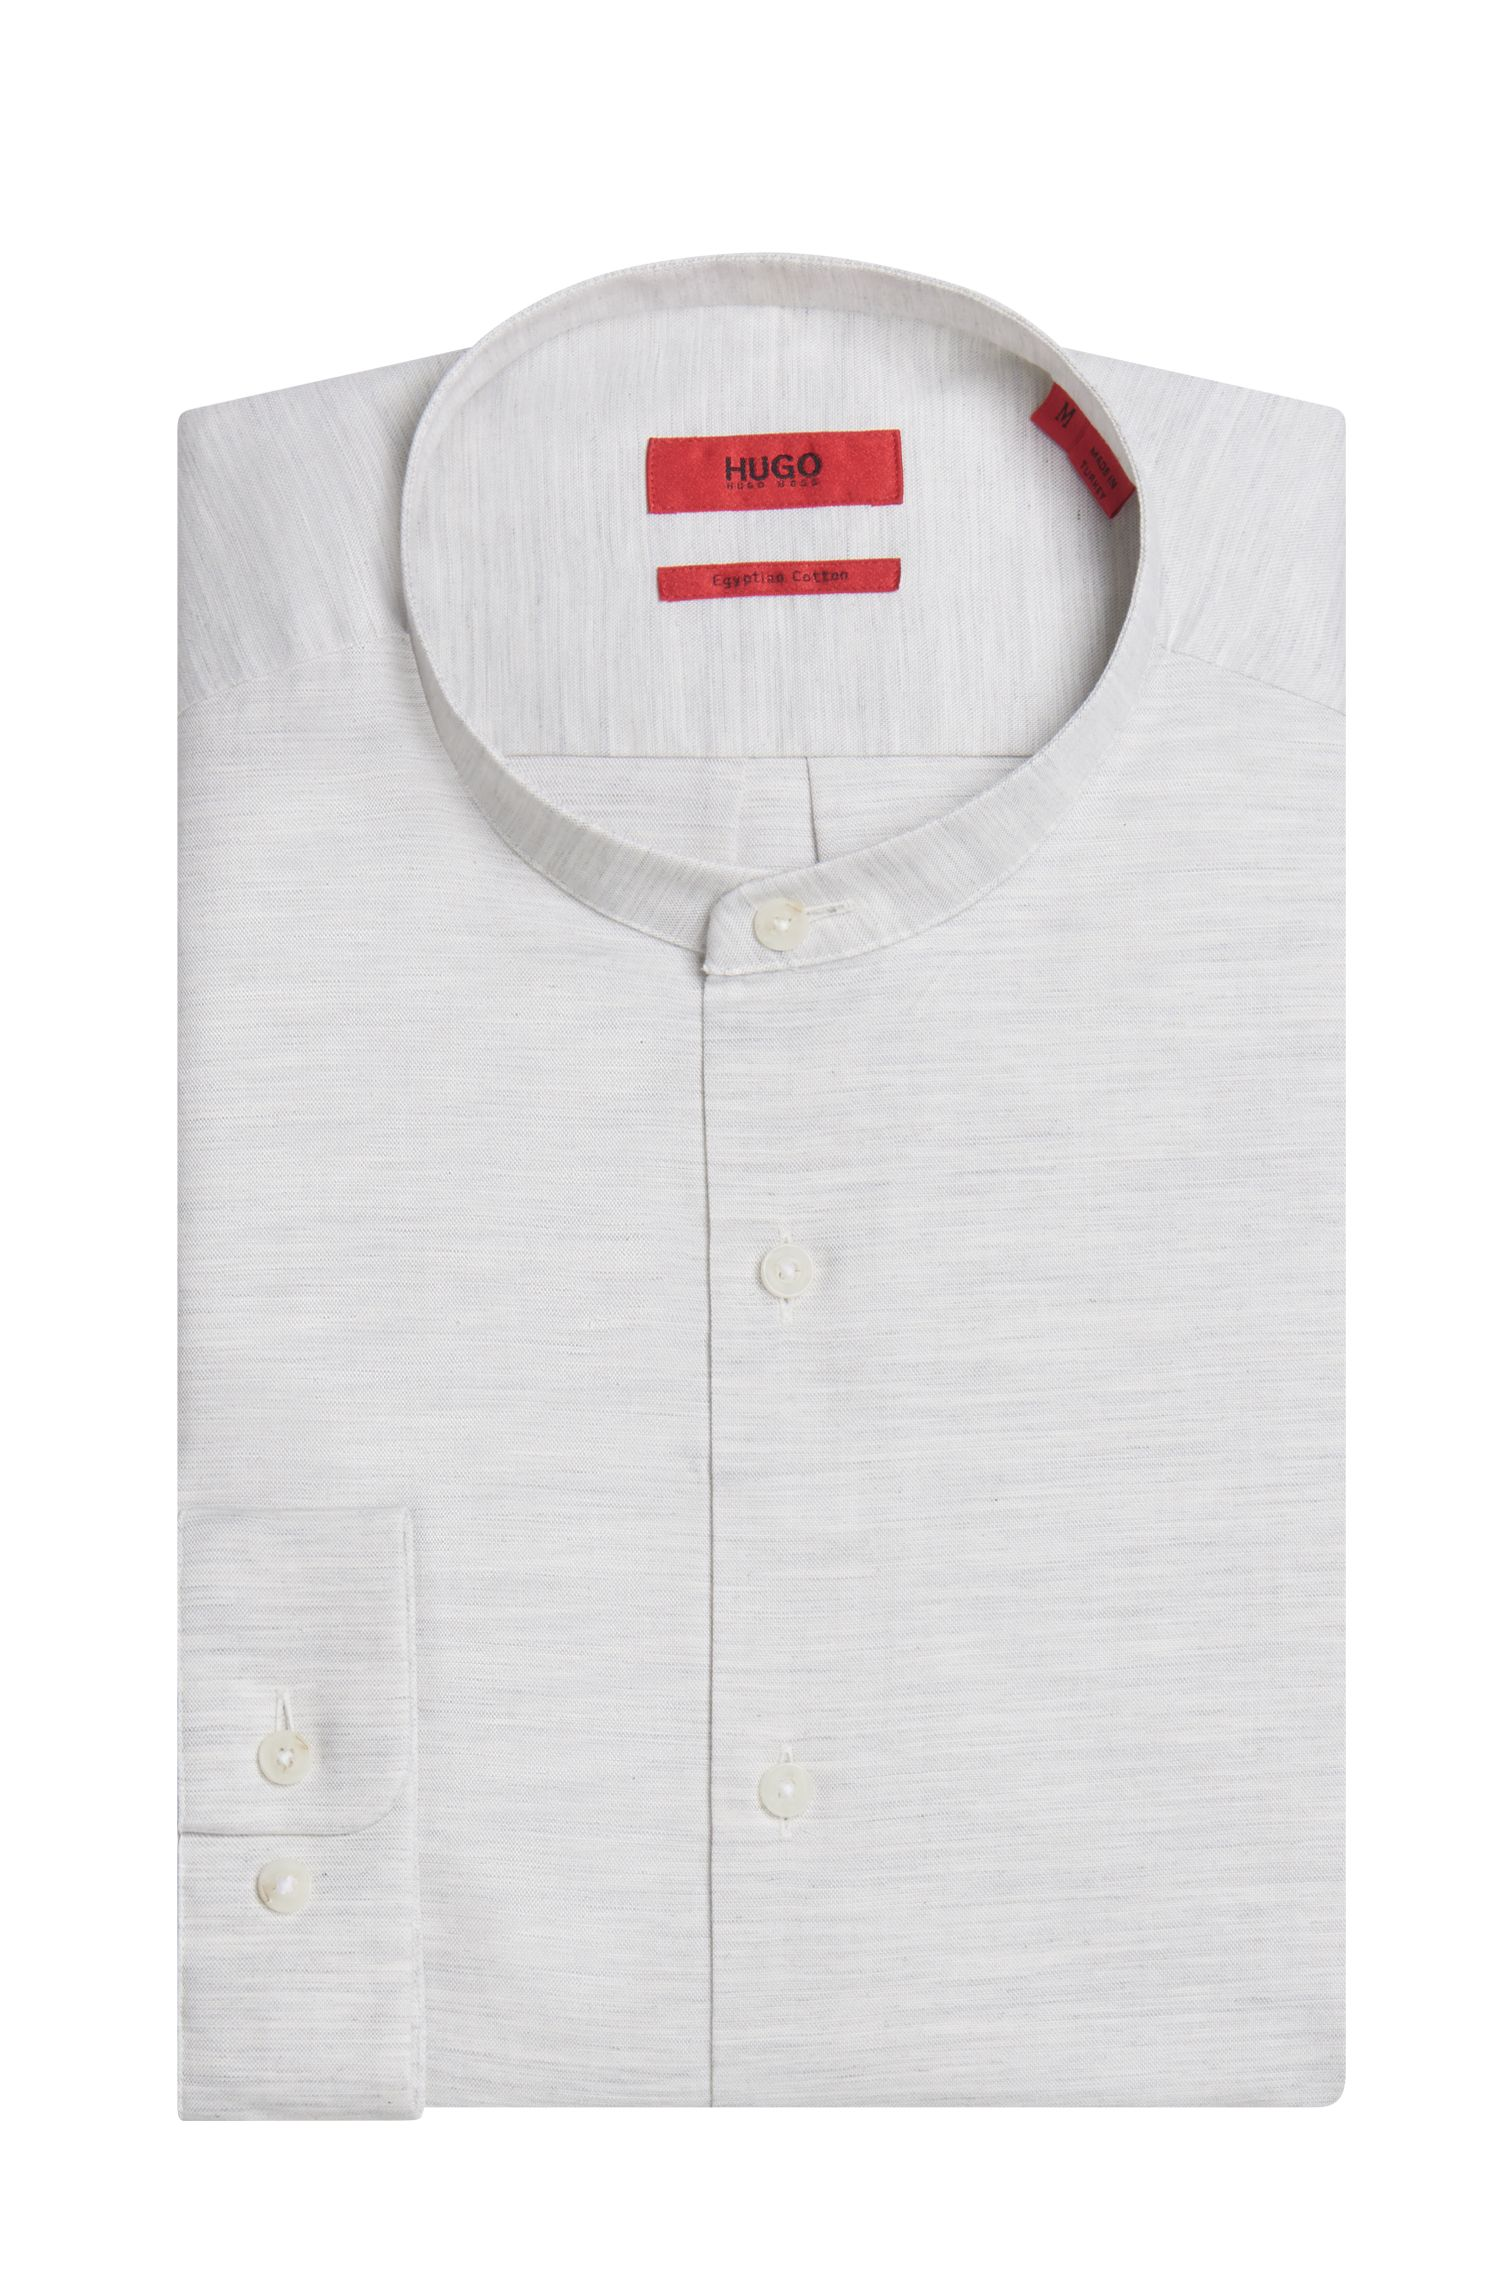 Cotton Sport Shirt, Regular Fit | Eddison W